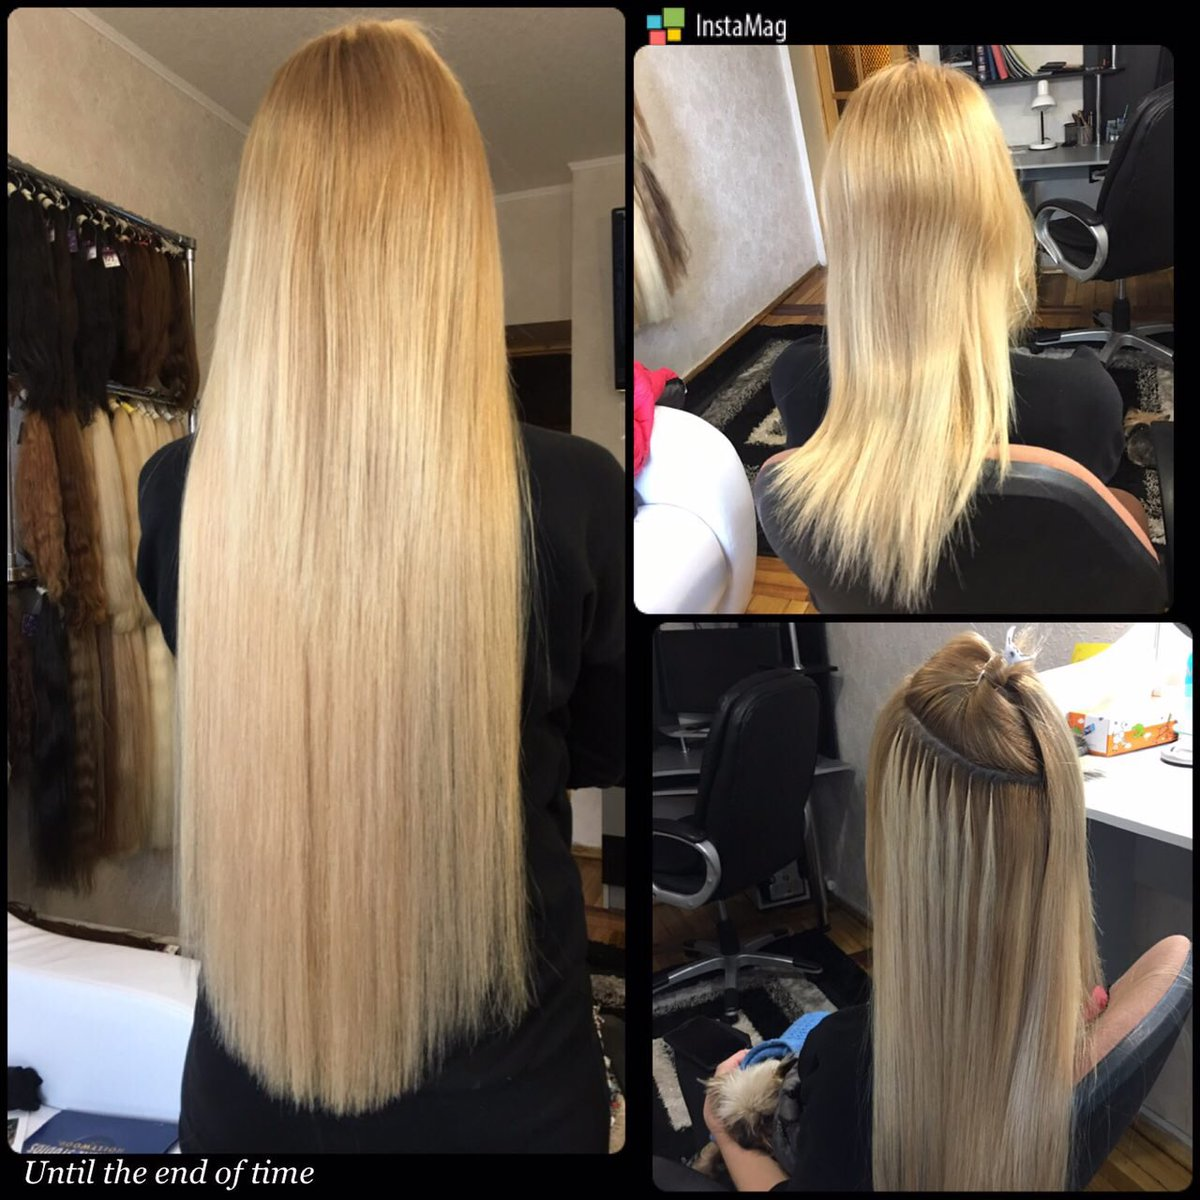 Julia gilas on twitter best hair extensions in san diego 300 julia gilas on twitter best hair extensions in san diego 300 email ghalenmy httpst6vqwj4qros pmusecretfo Image collections